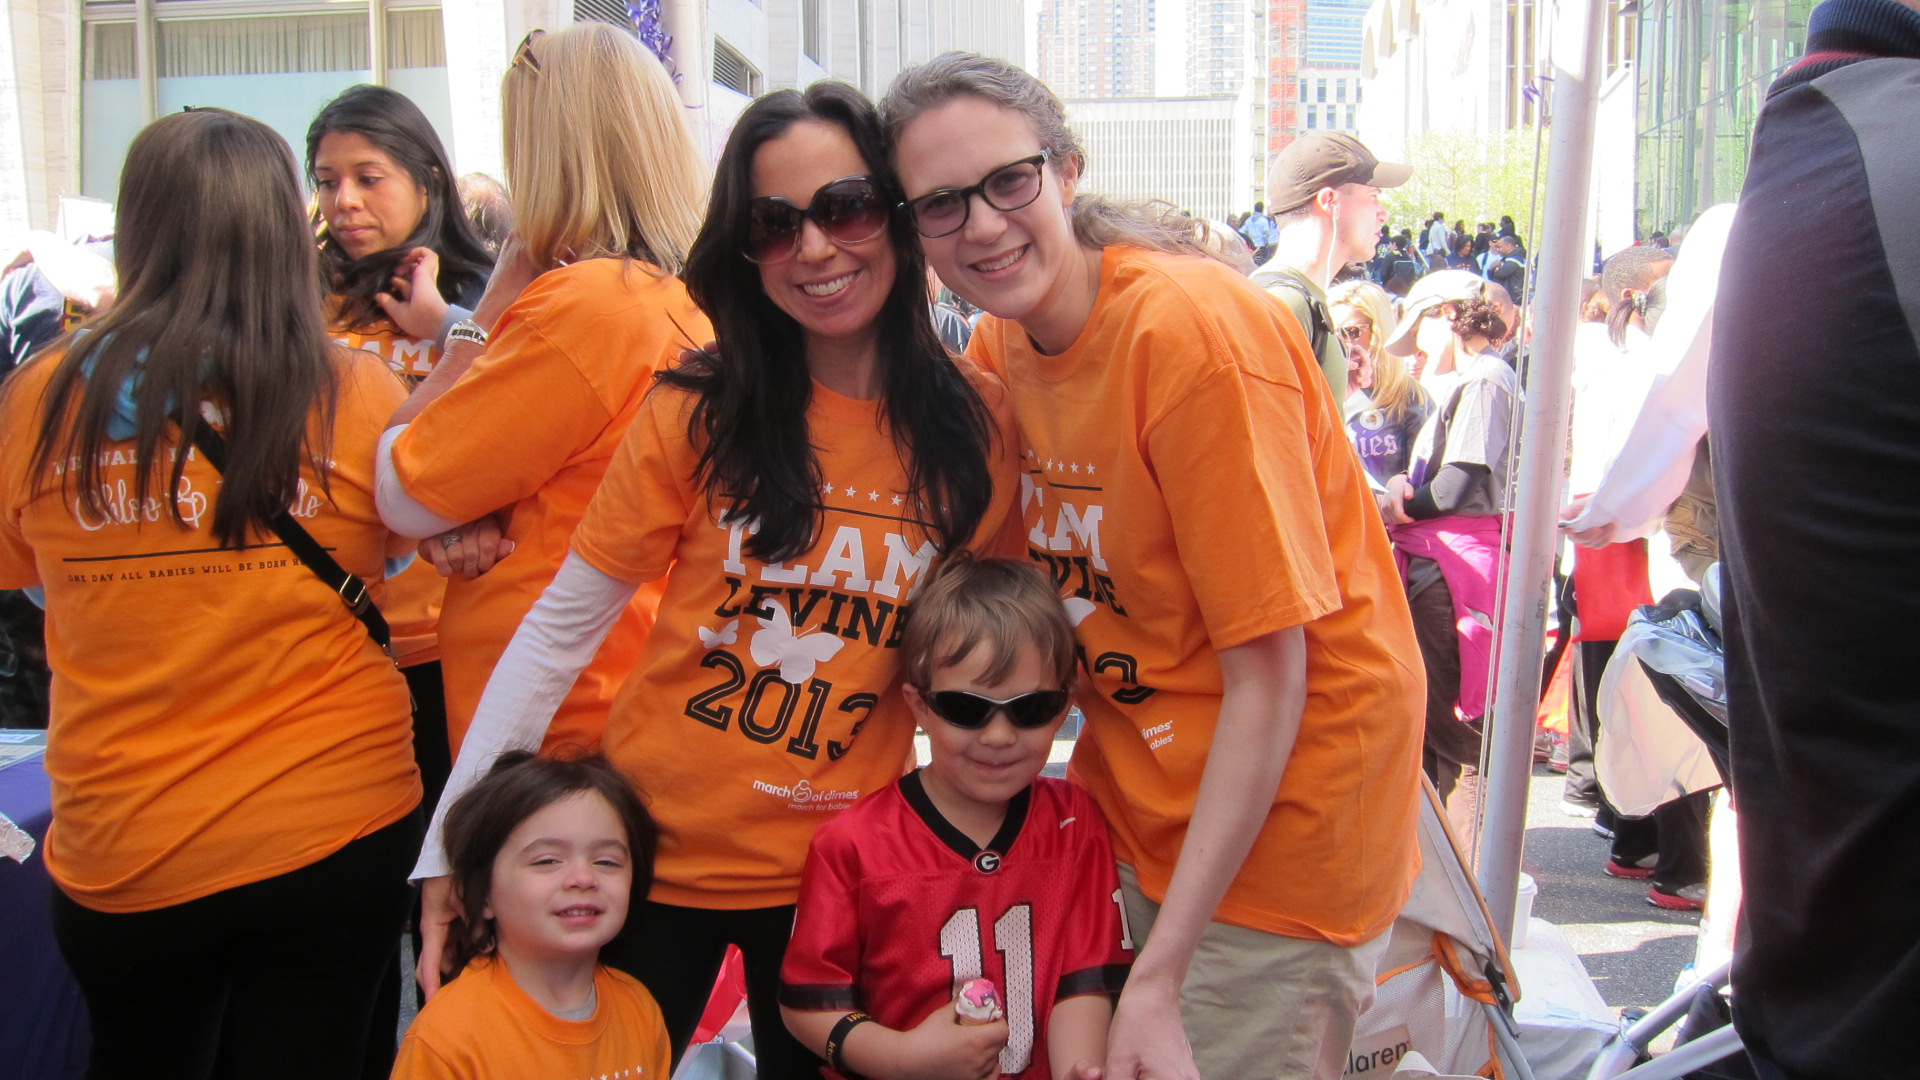 paulina--julian-levine-and-margot-weil--tucker-gongaware-at-the-2013-march-for-babies-walk_13096486933_o.jpg